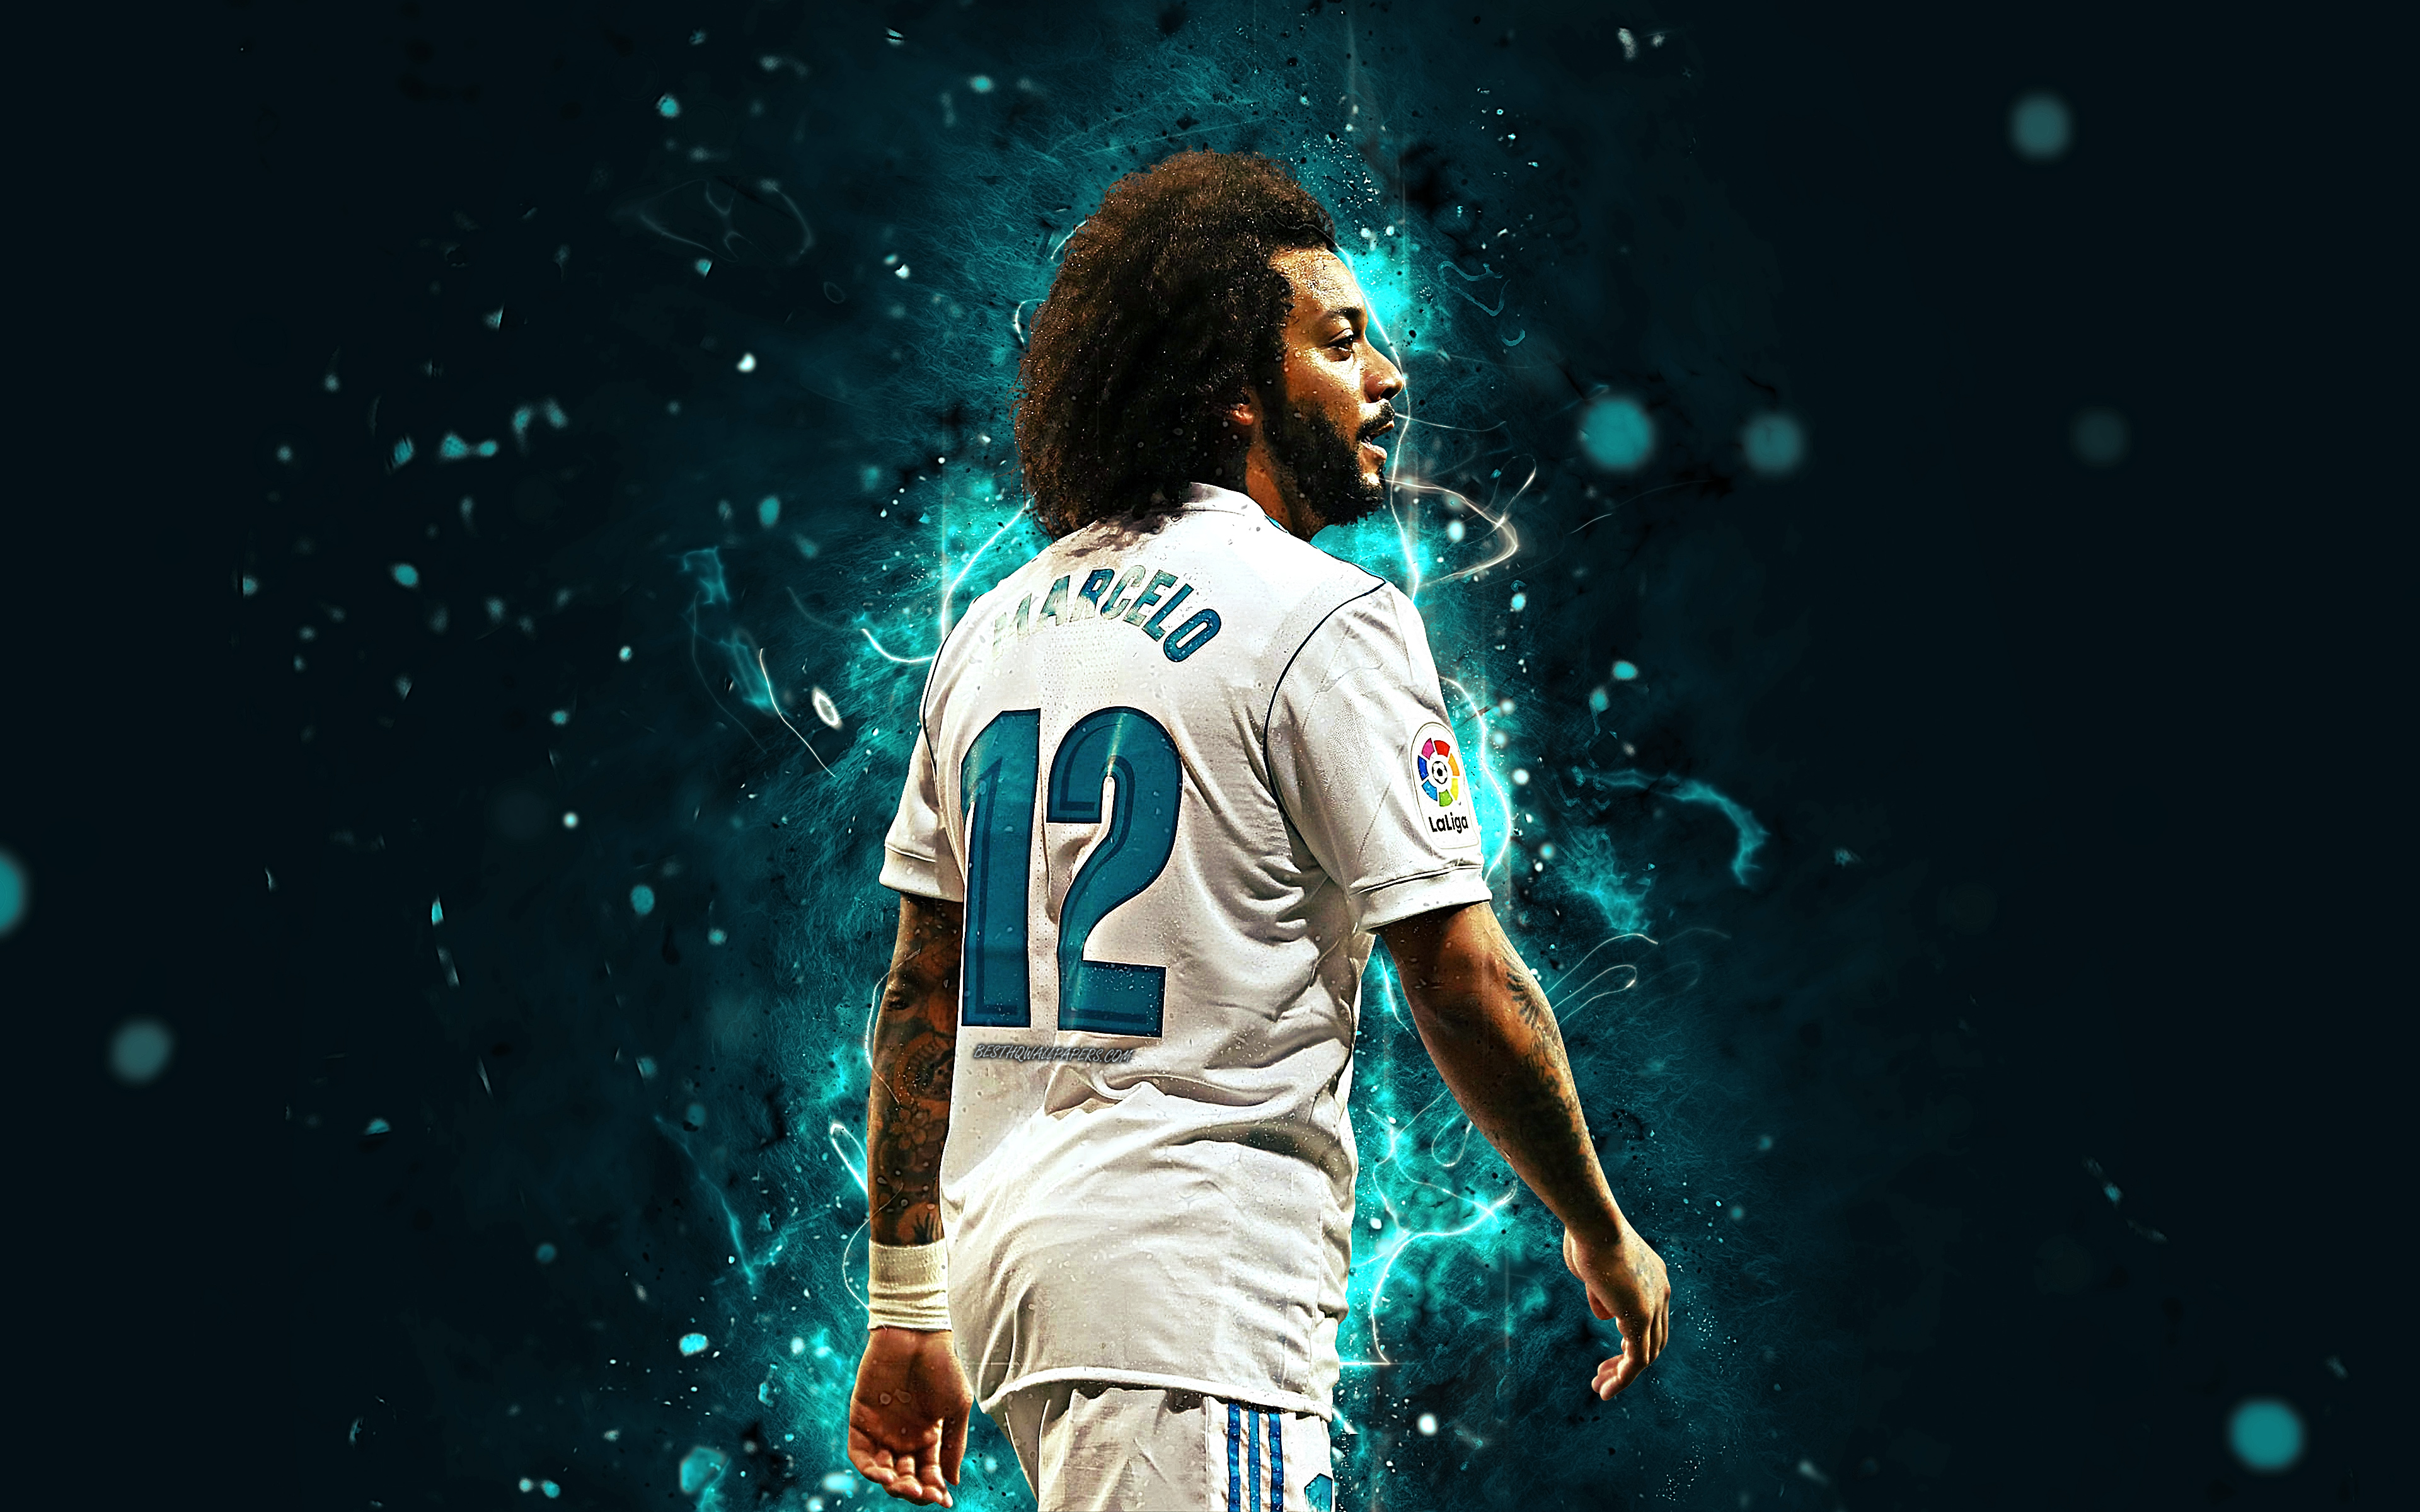 Download wallpapers Marcelo 4k football stars neon lights Real 3840x2400